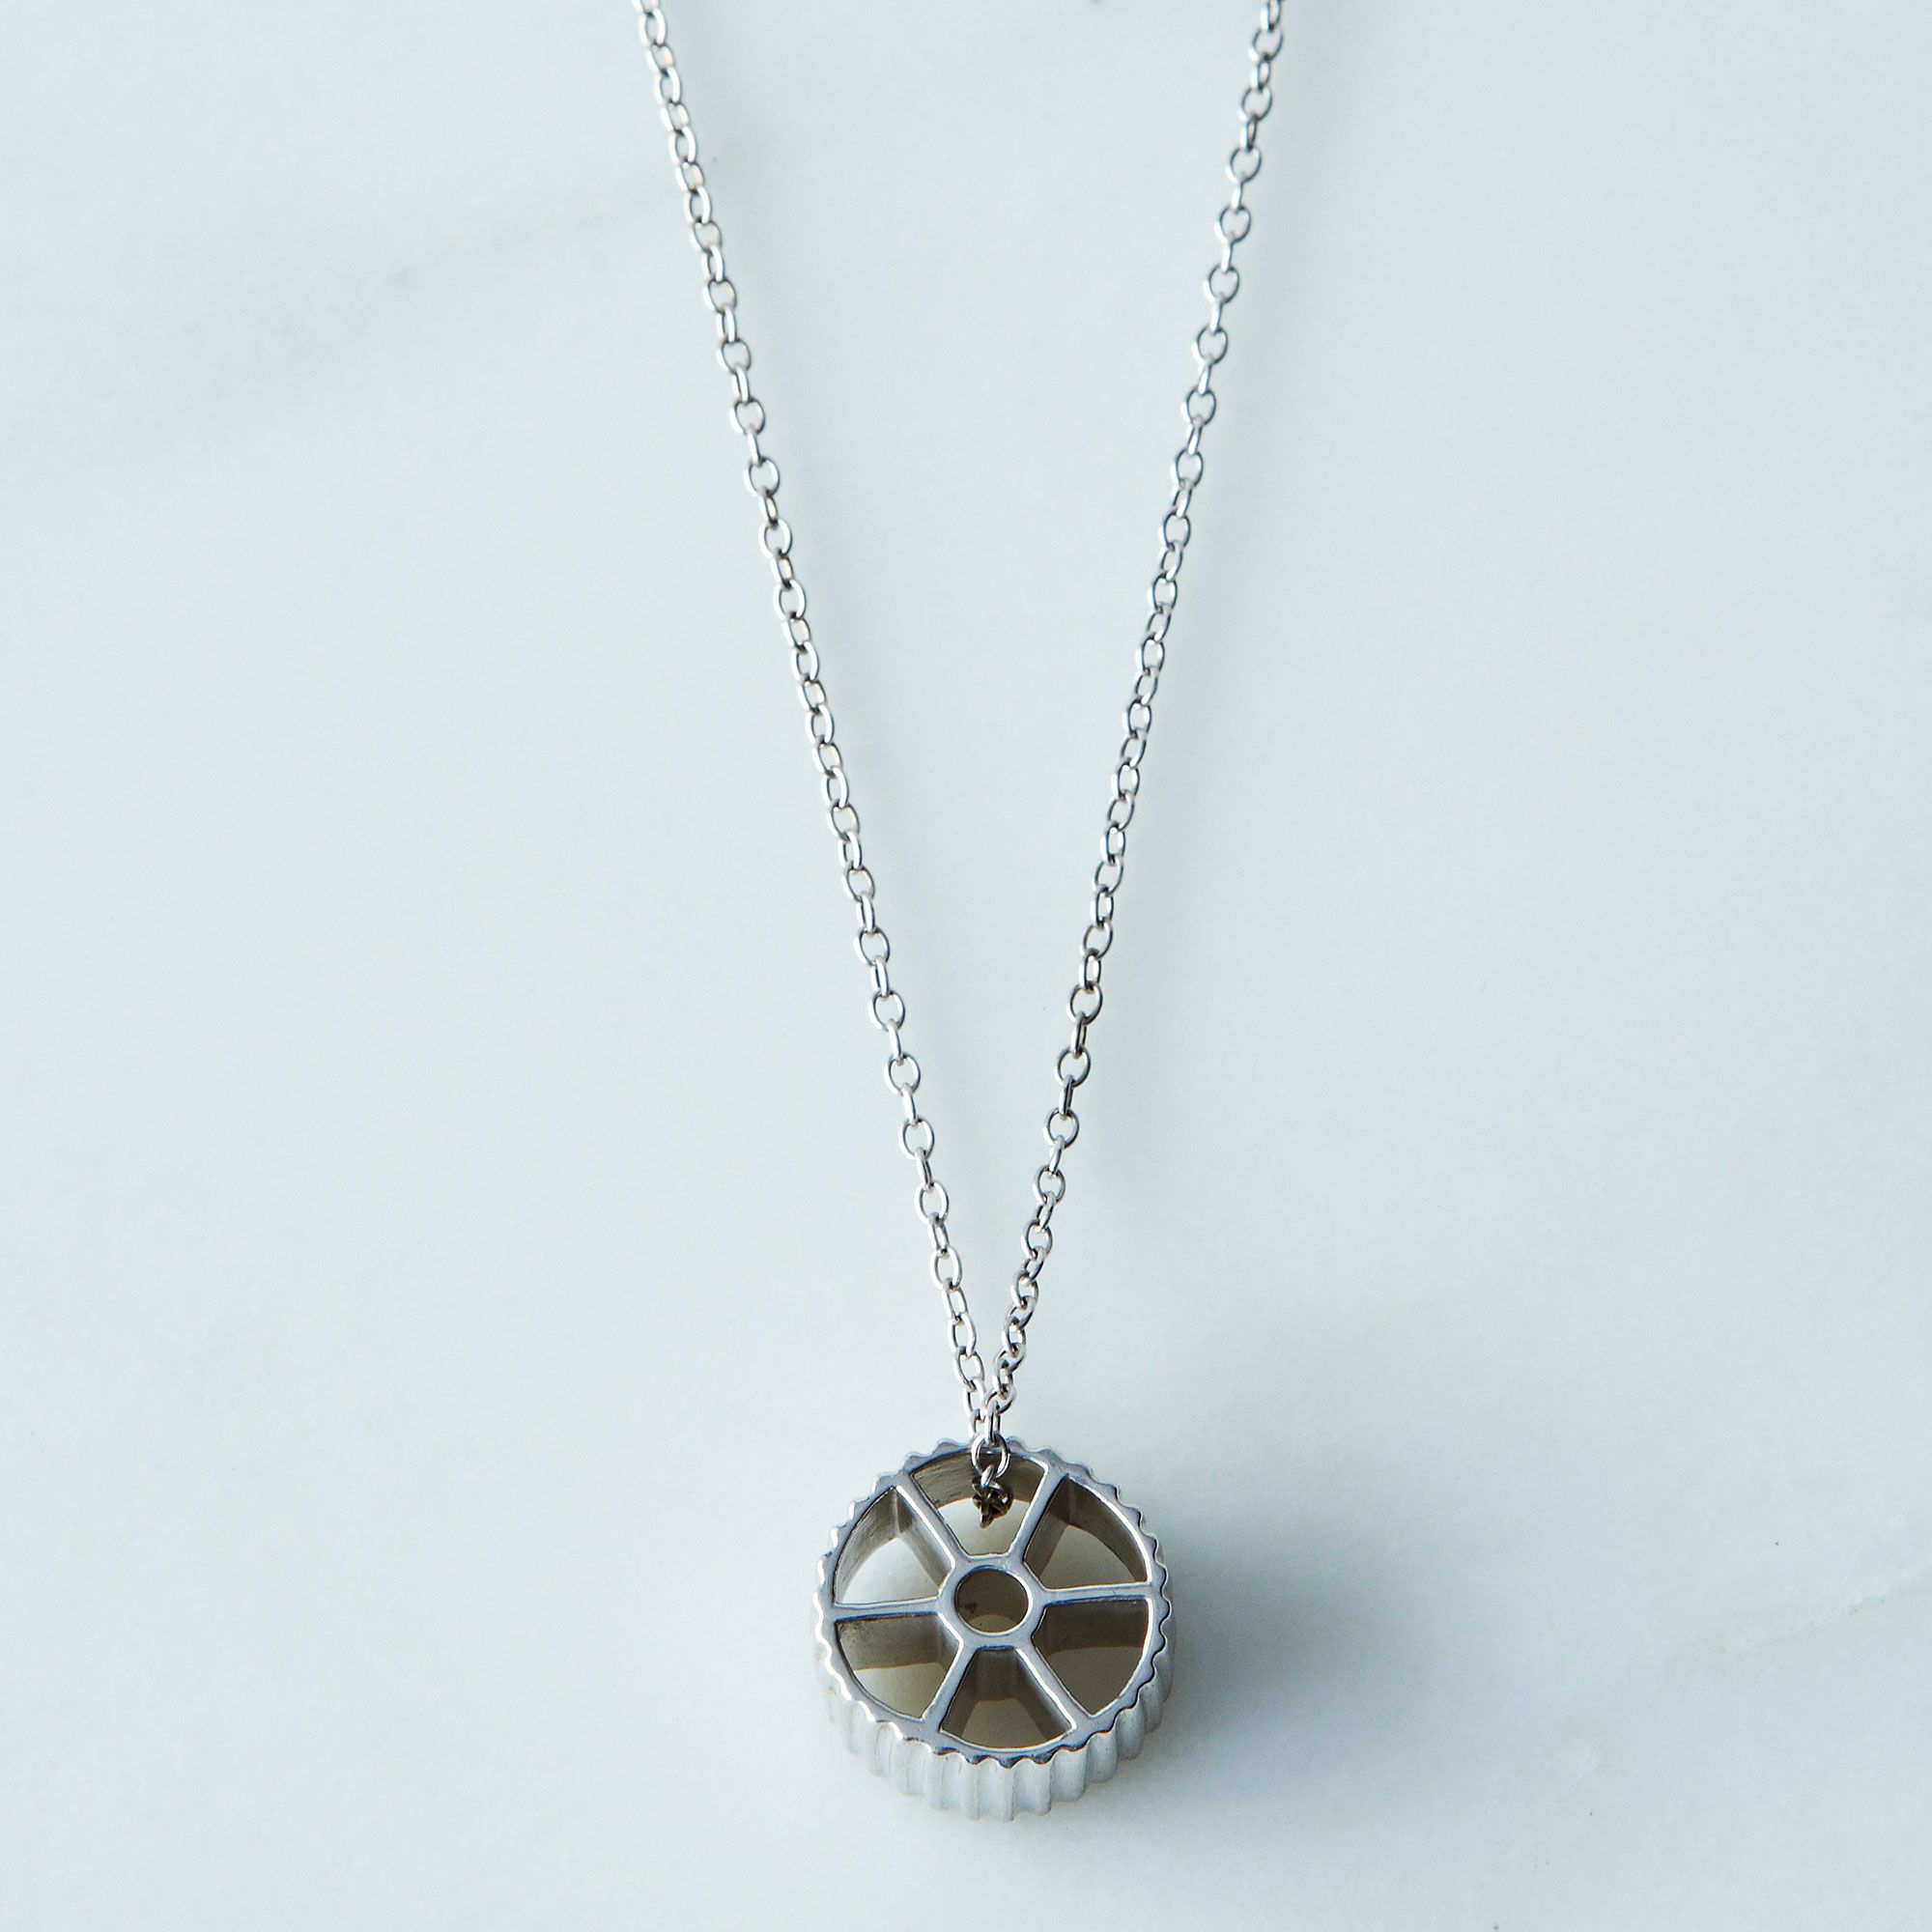 Rotelle Pasta Necklace - Silver